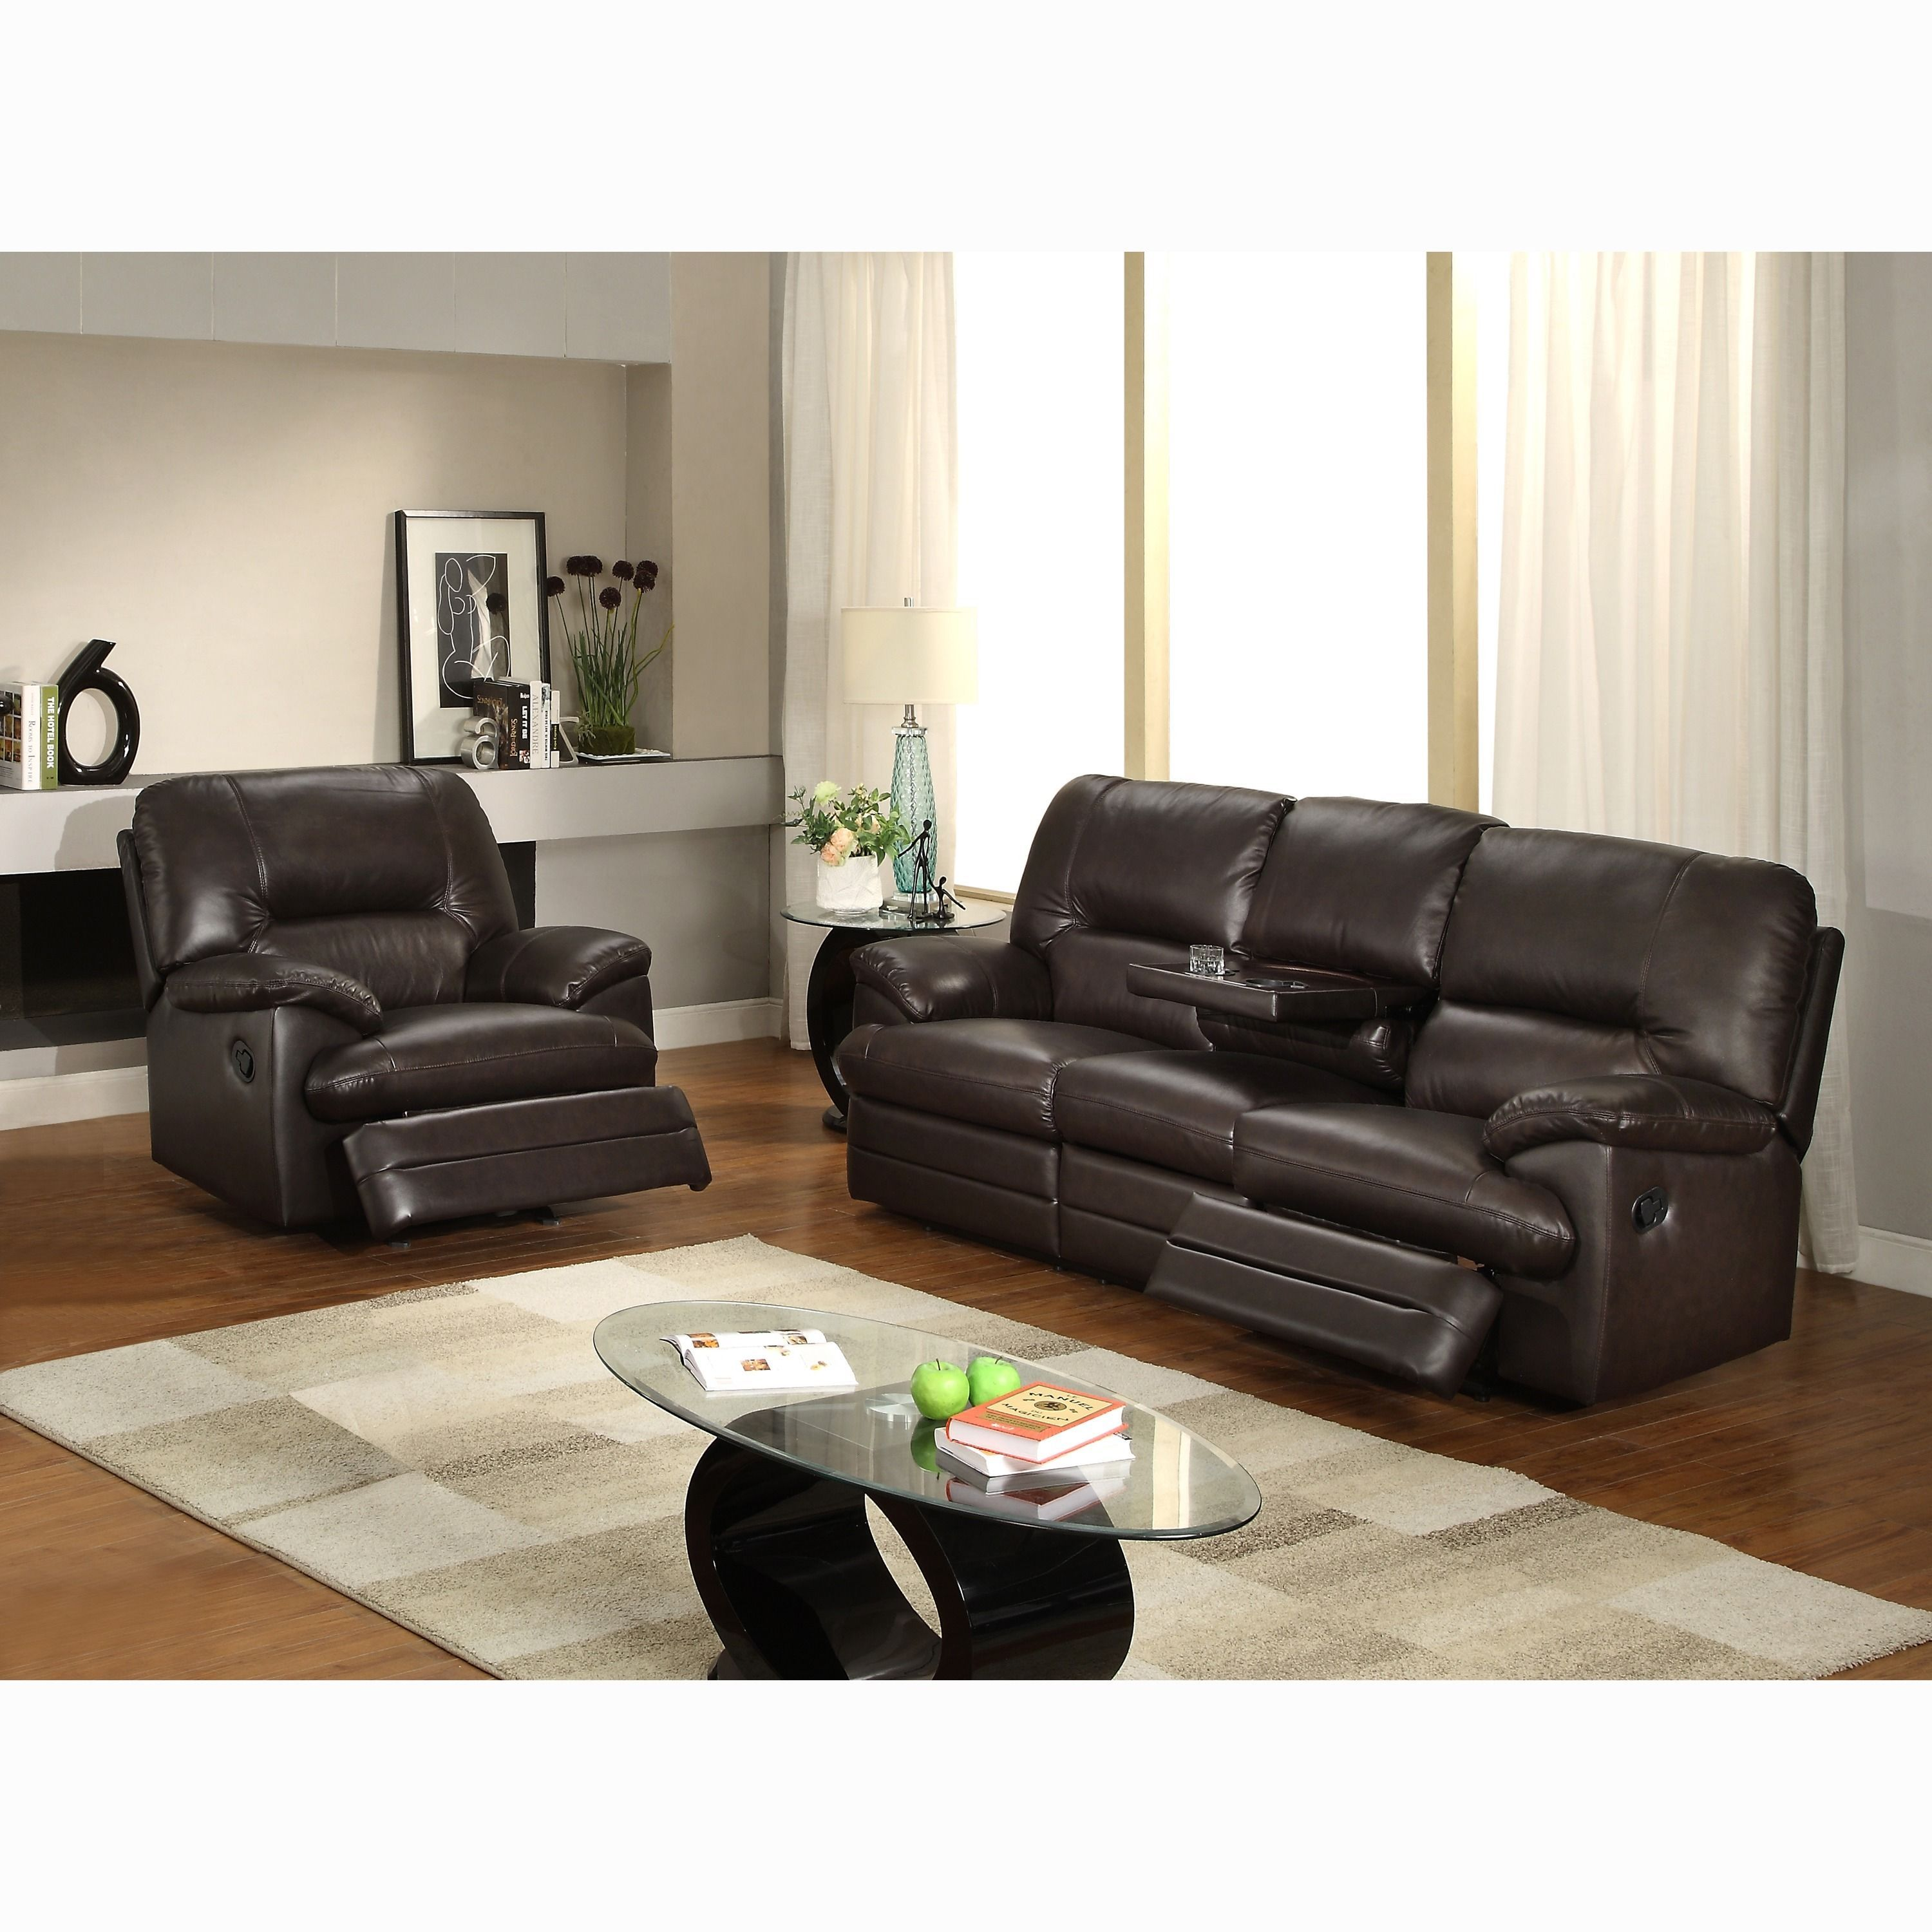 coney coffee italian leather reclining sofa and recliner chair rh pinterest co uk